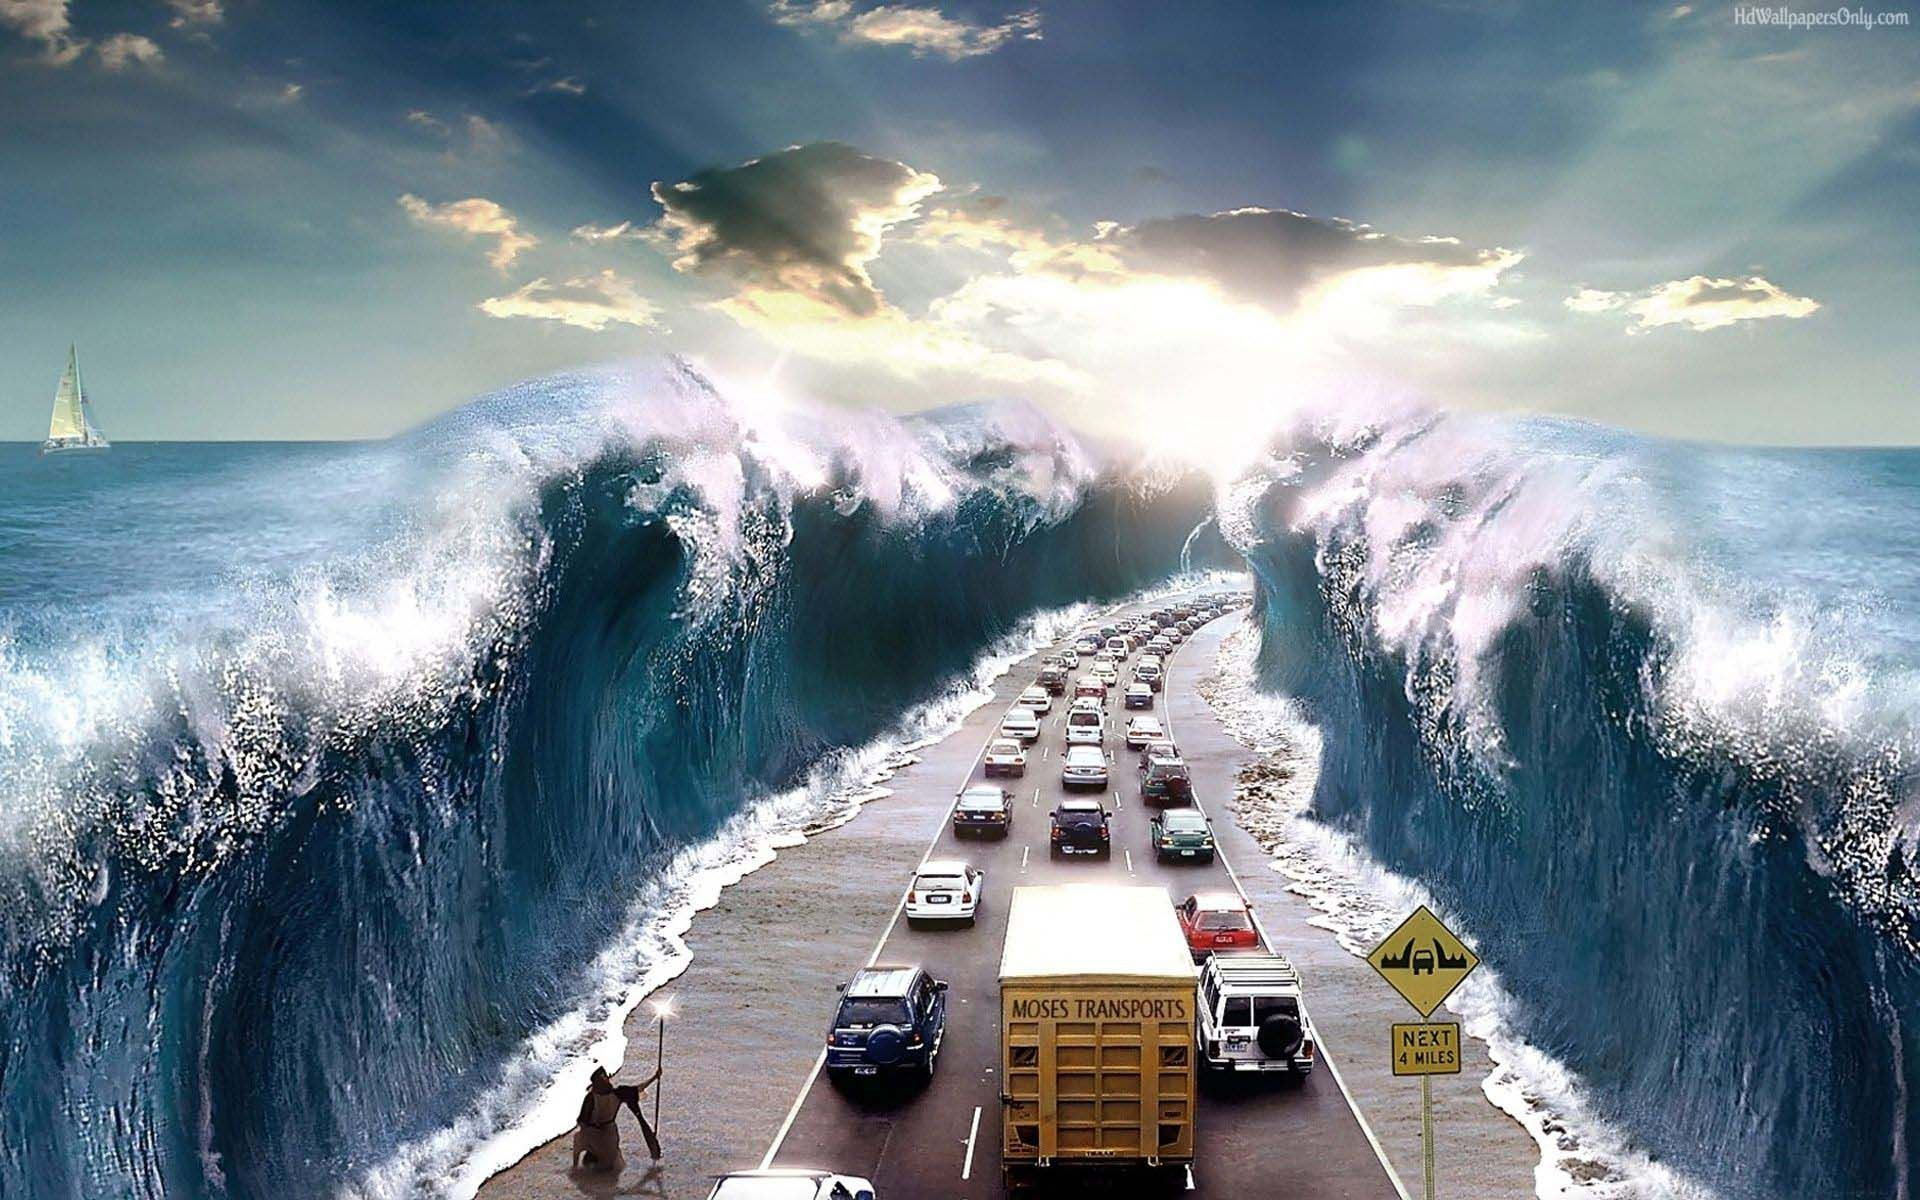 tsunami pictures hd 1080p hd wallpapers onlyhd wallpapers only